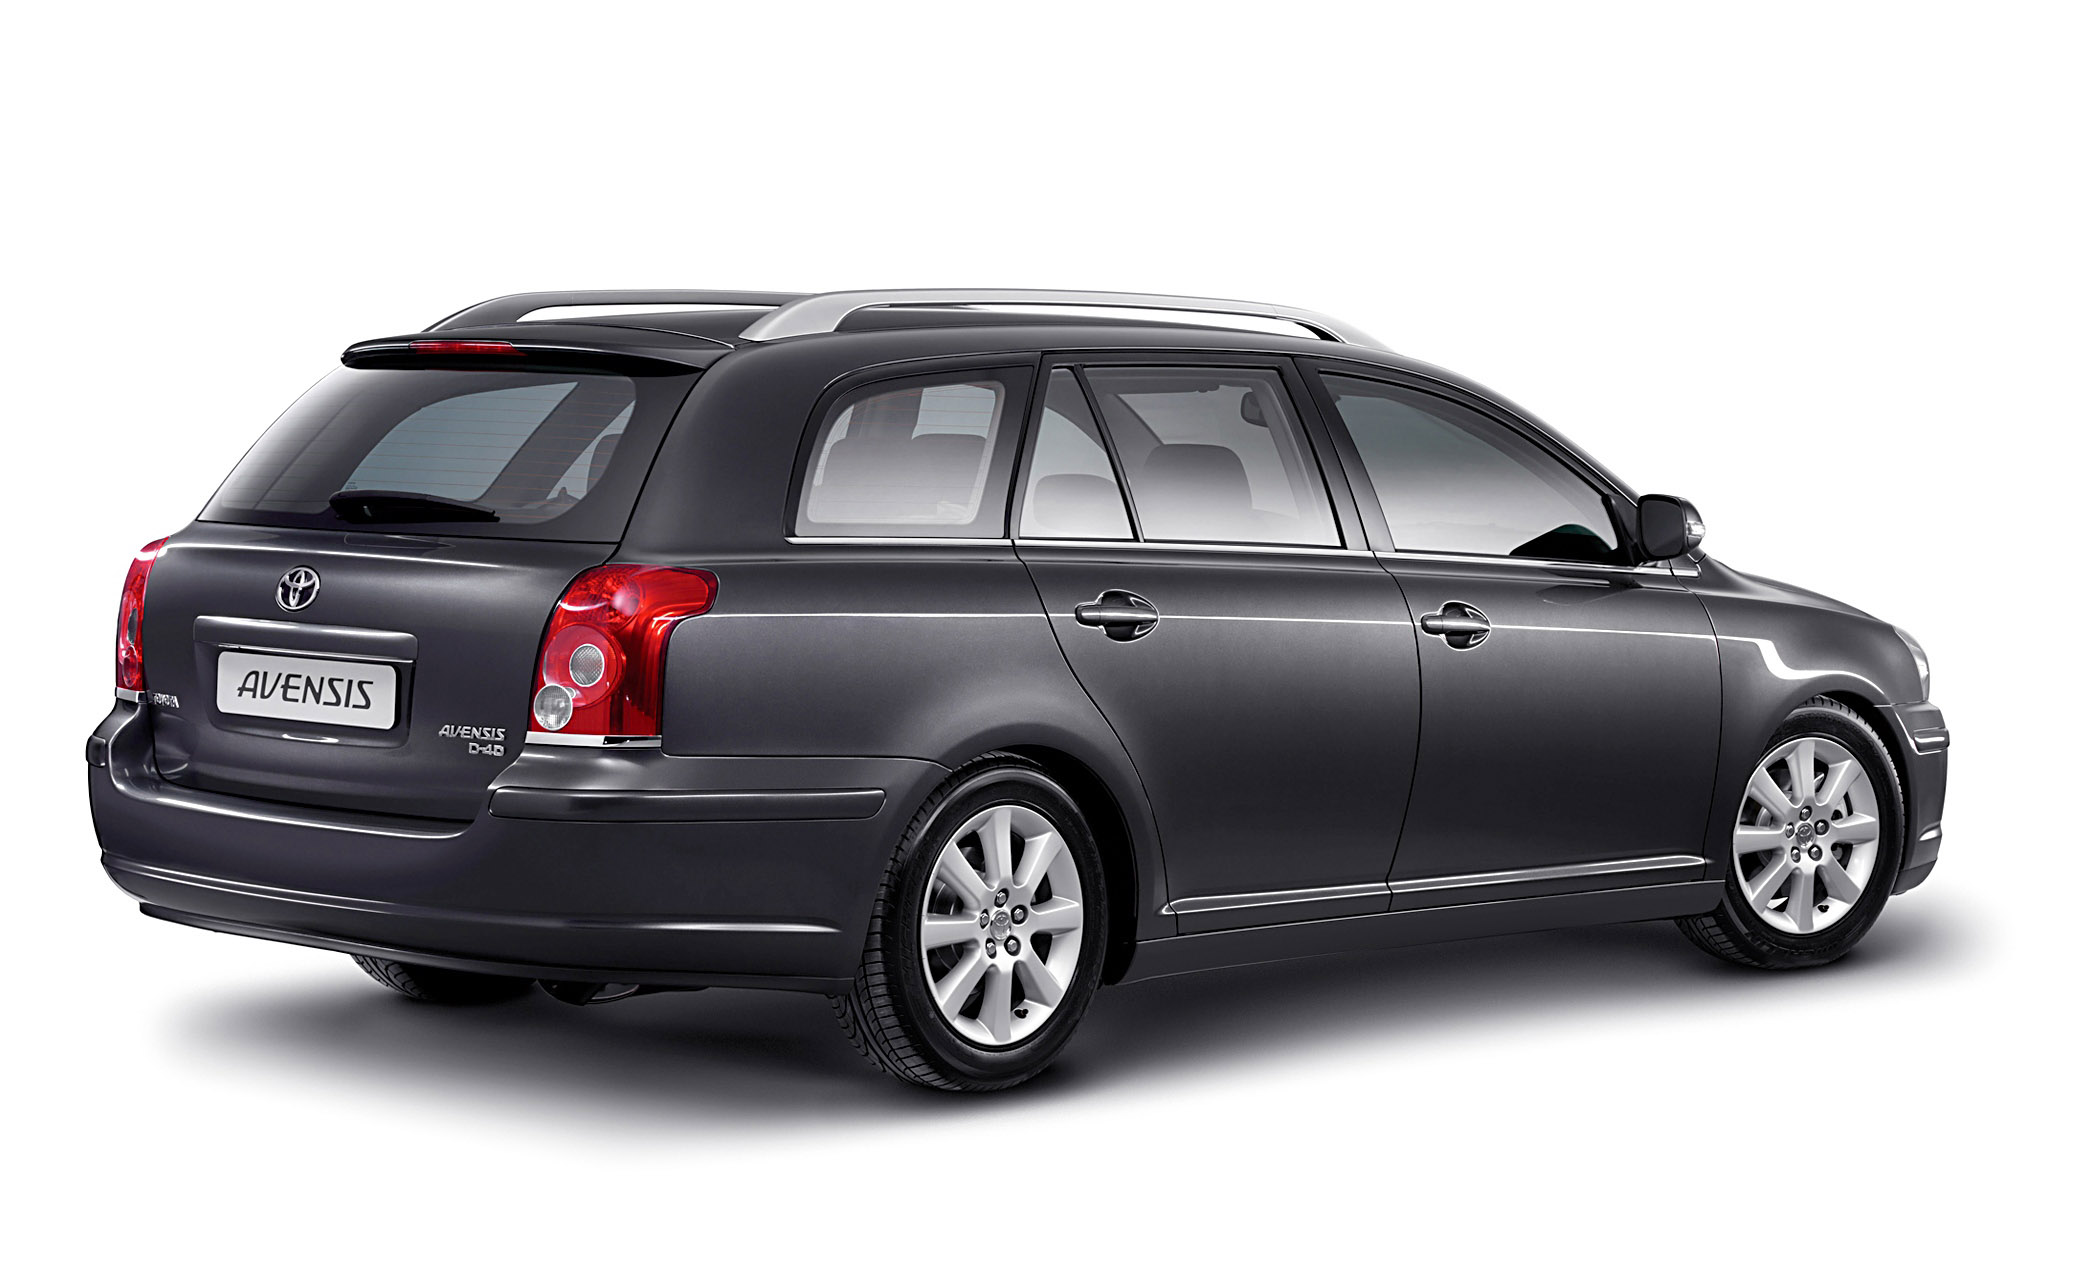 toyota avensis 2007 review amazing pictures and images look at the car. Black Bedroom Furniture Sets. Home Design Ideas